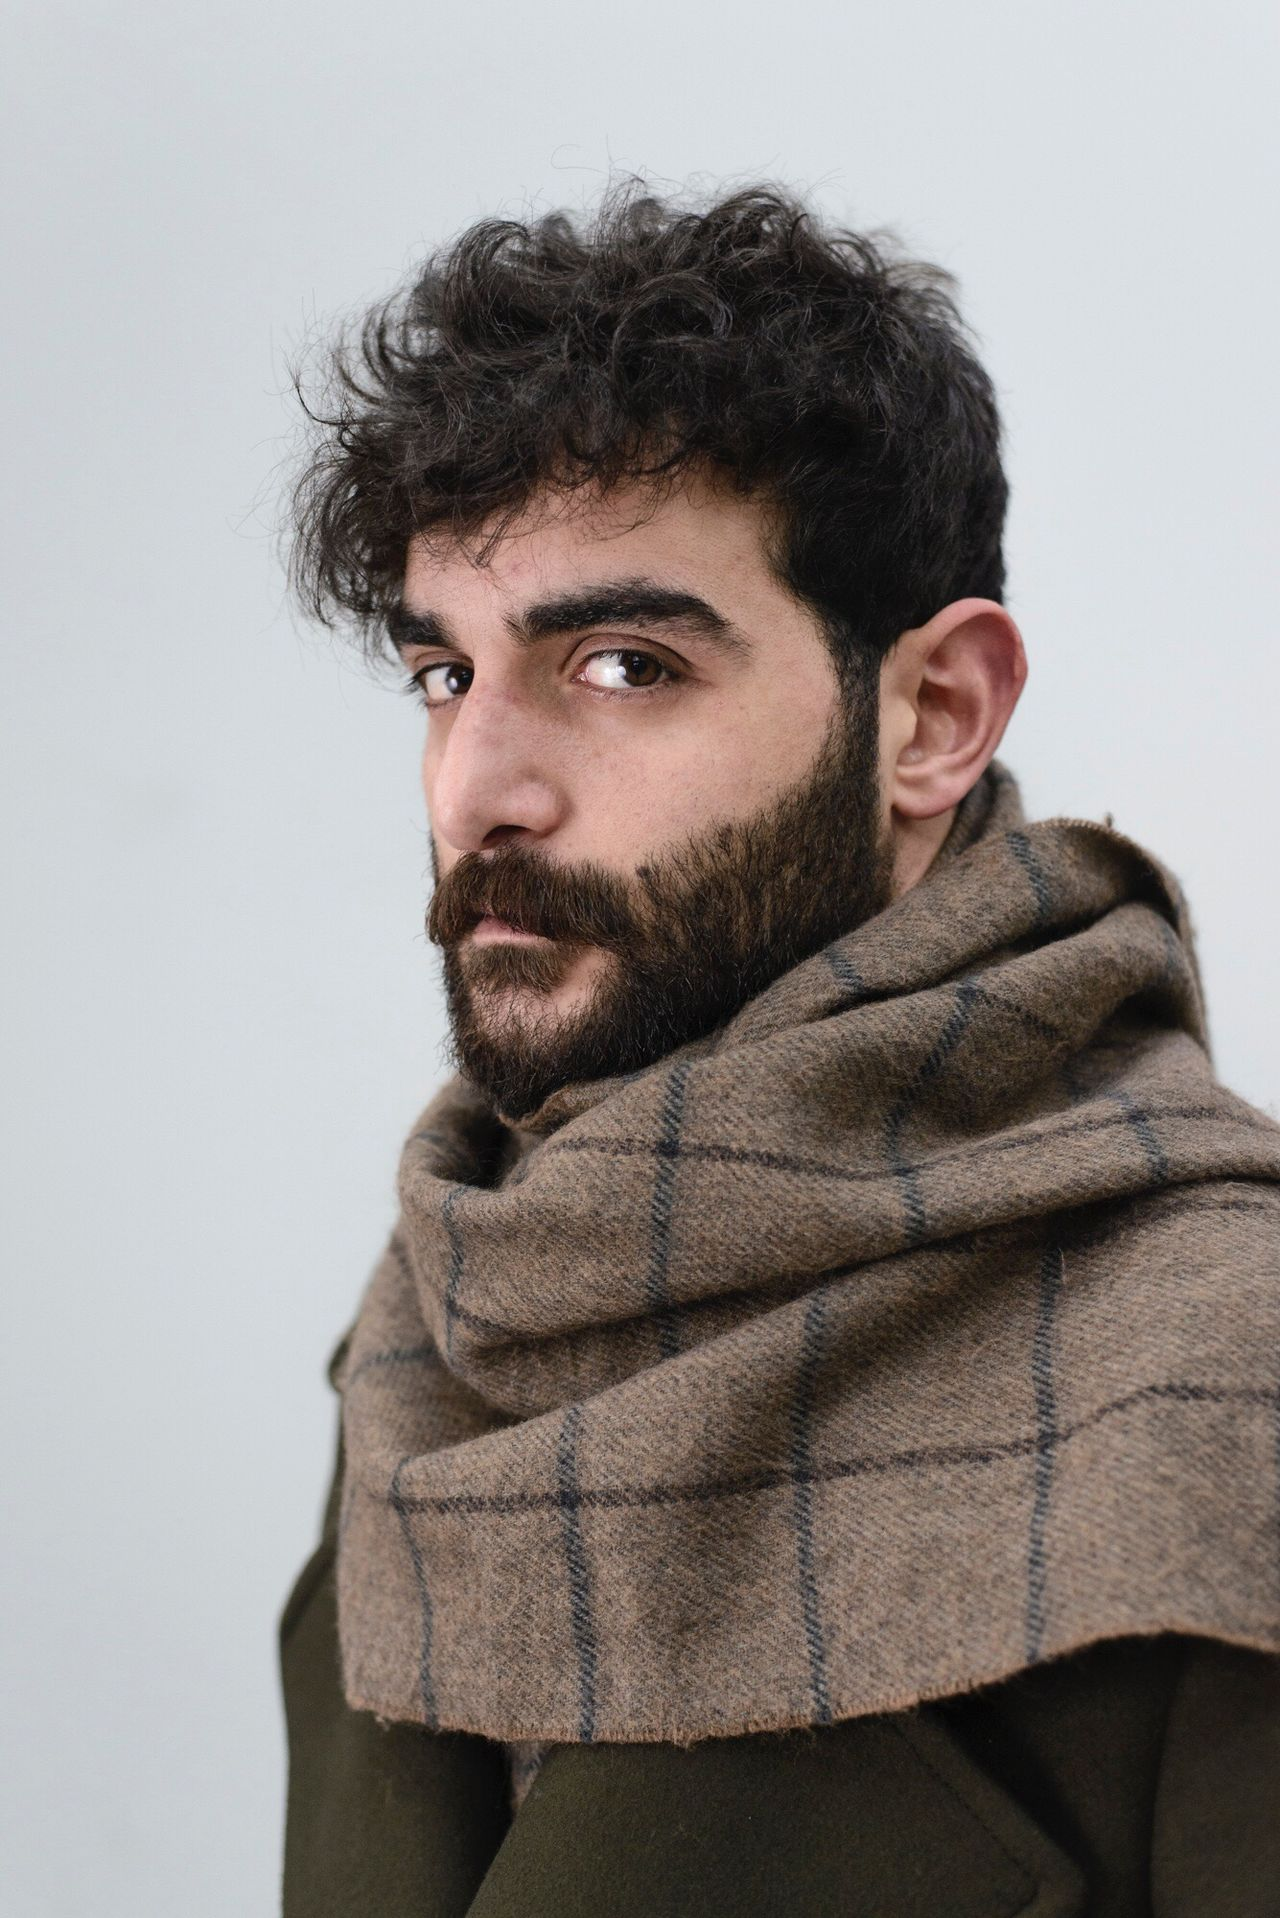 portrait real people one person Looking At Camera beard studio shot young adult lifestyles warm clothing close-up day white background people Adult